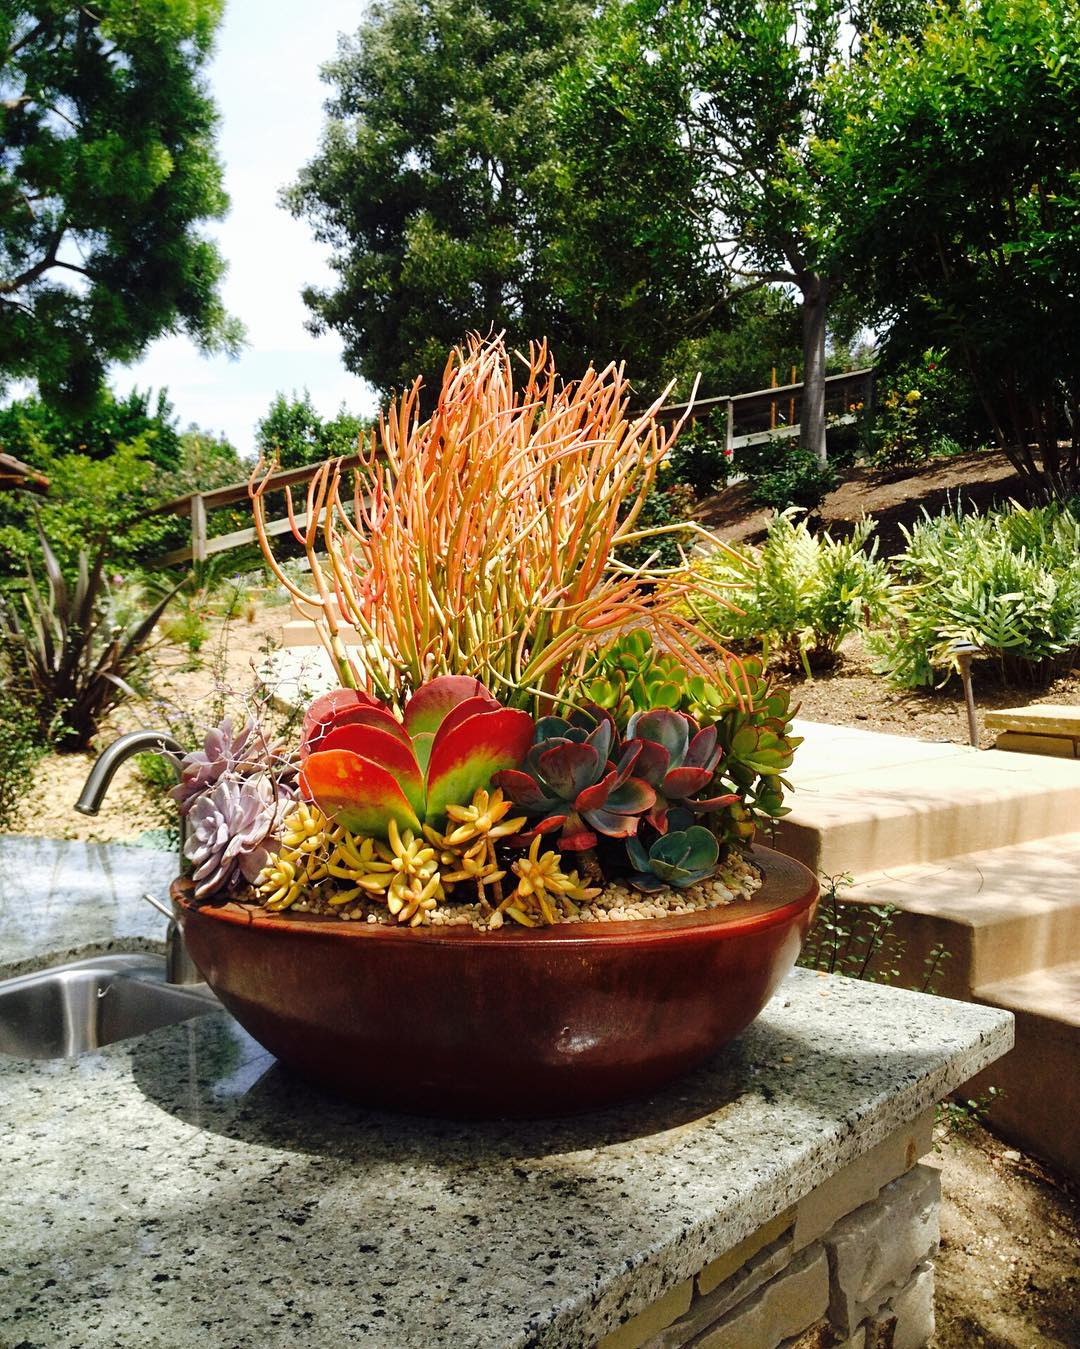 Artistic container gardens and landscapes